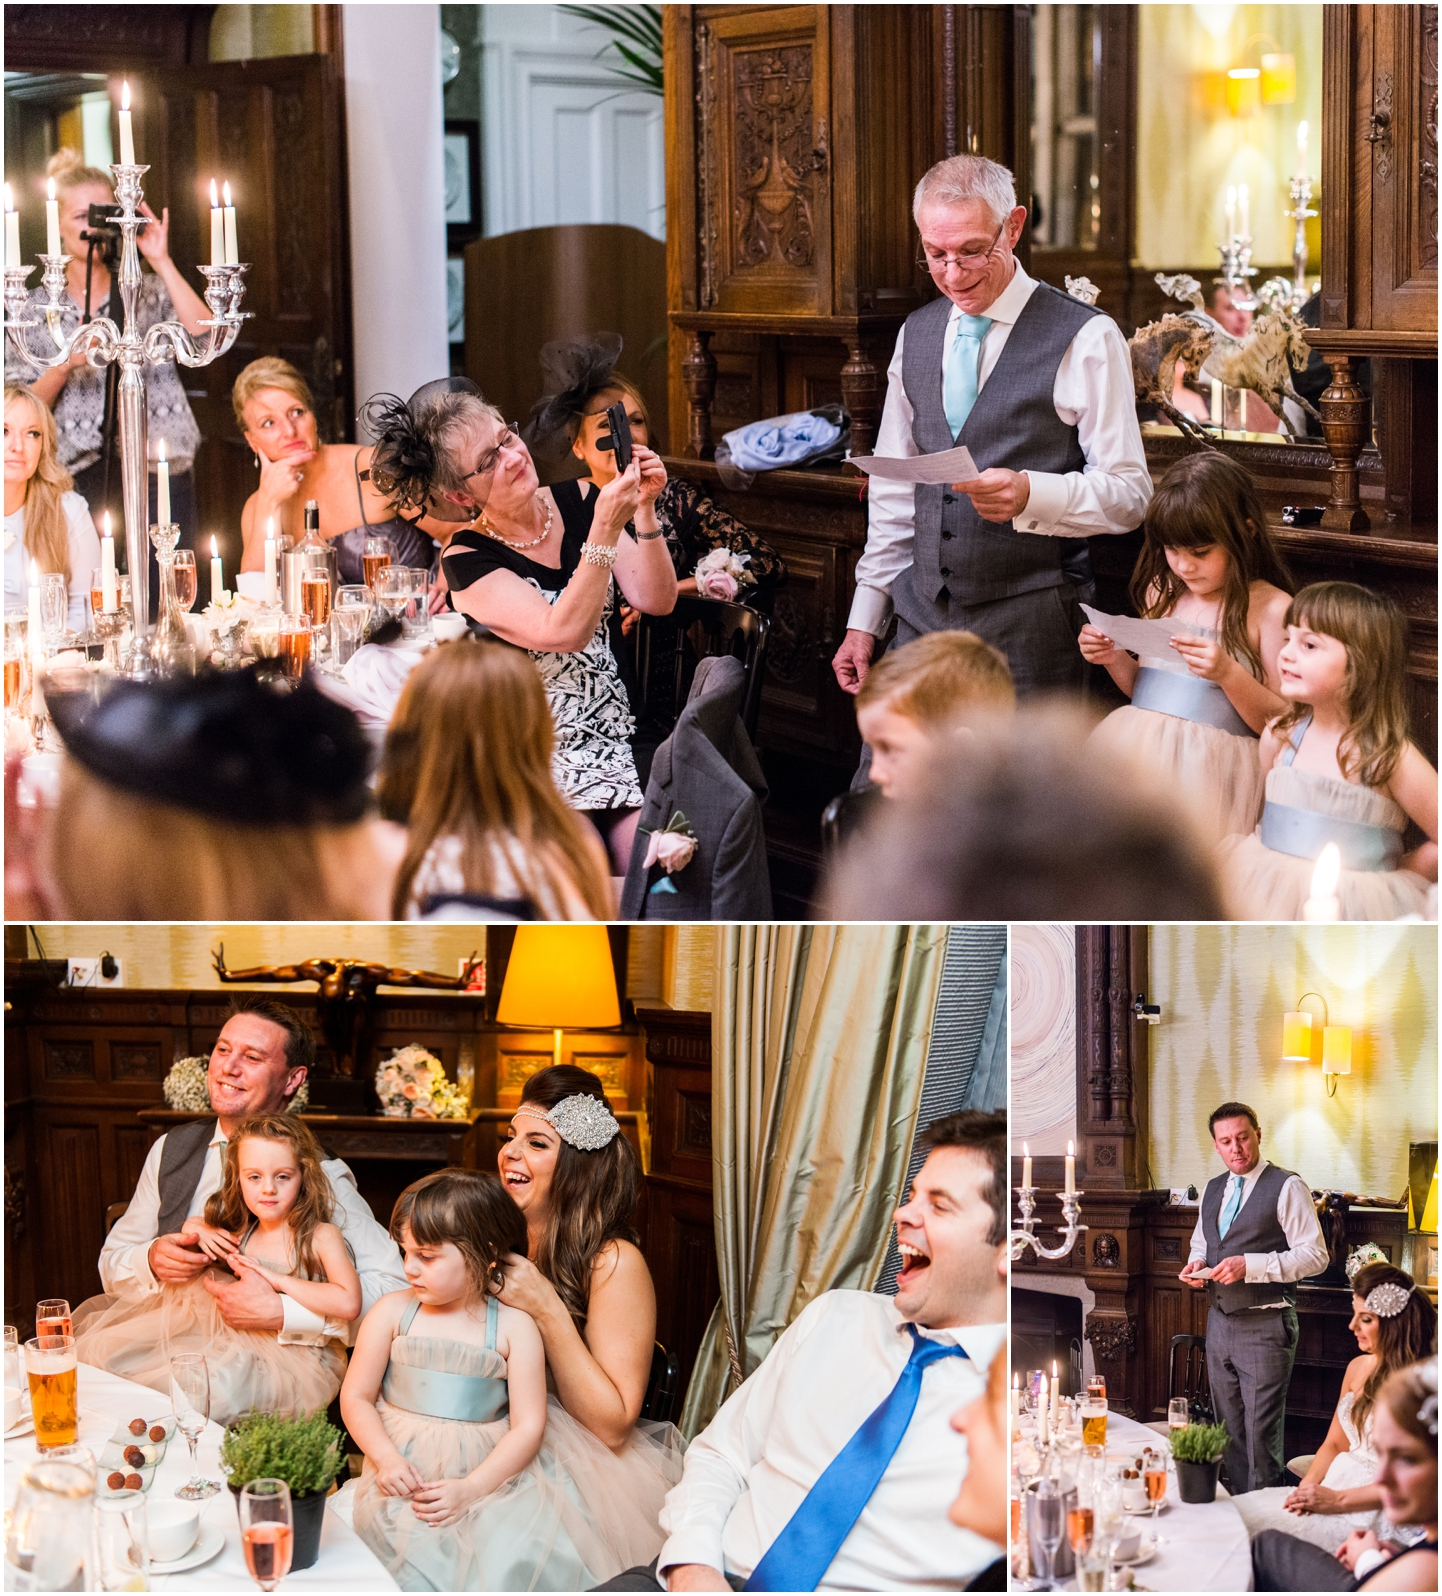 Moxhull Hall Wedding Photography, Lisa Carpenter Photography, photos, Sutton Coldfield, West Midlands, Birmingham, speeches